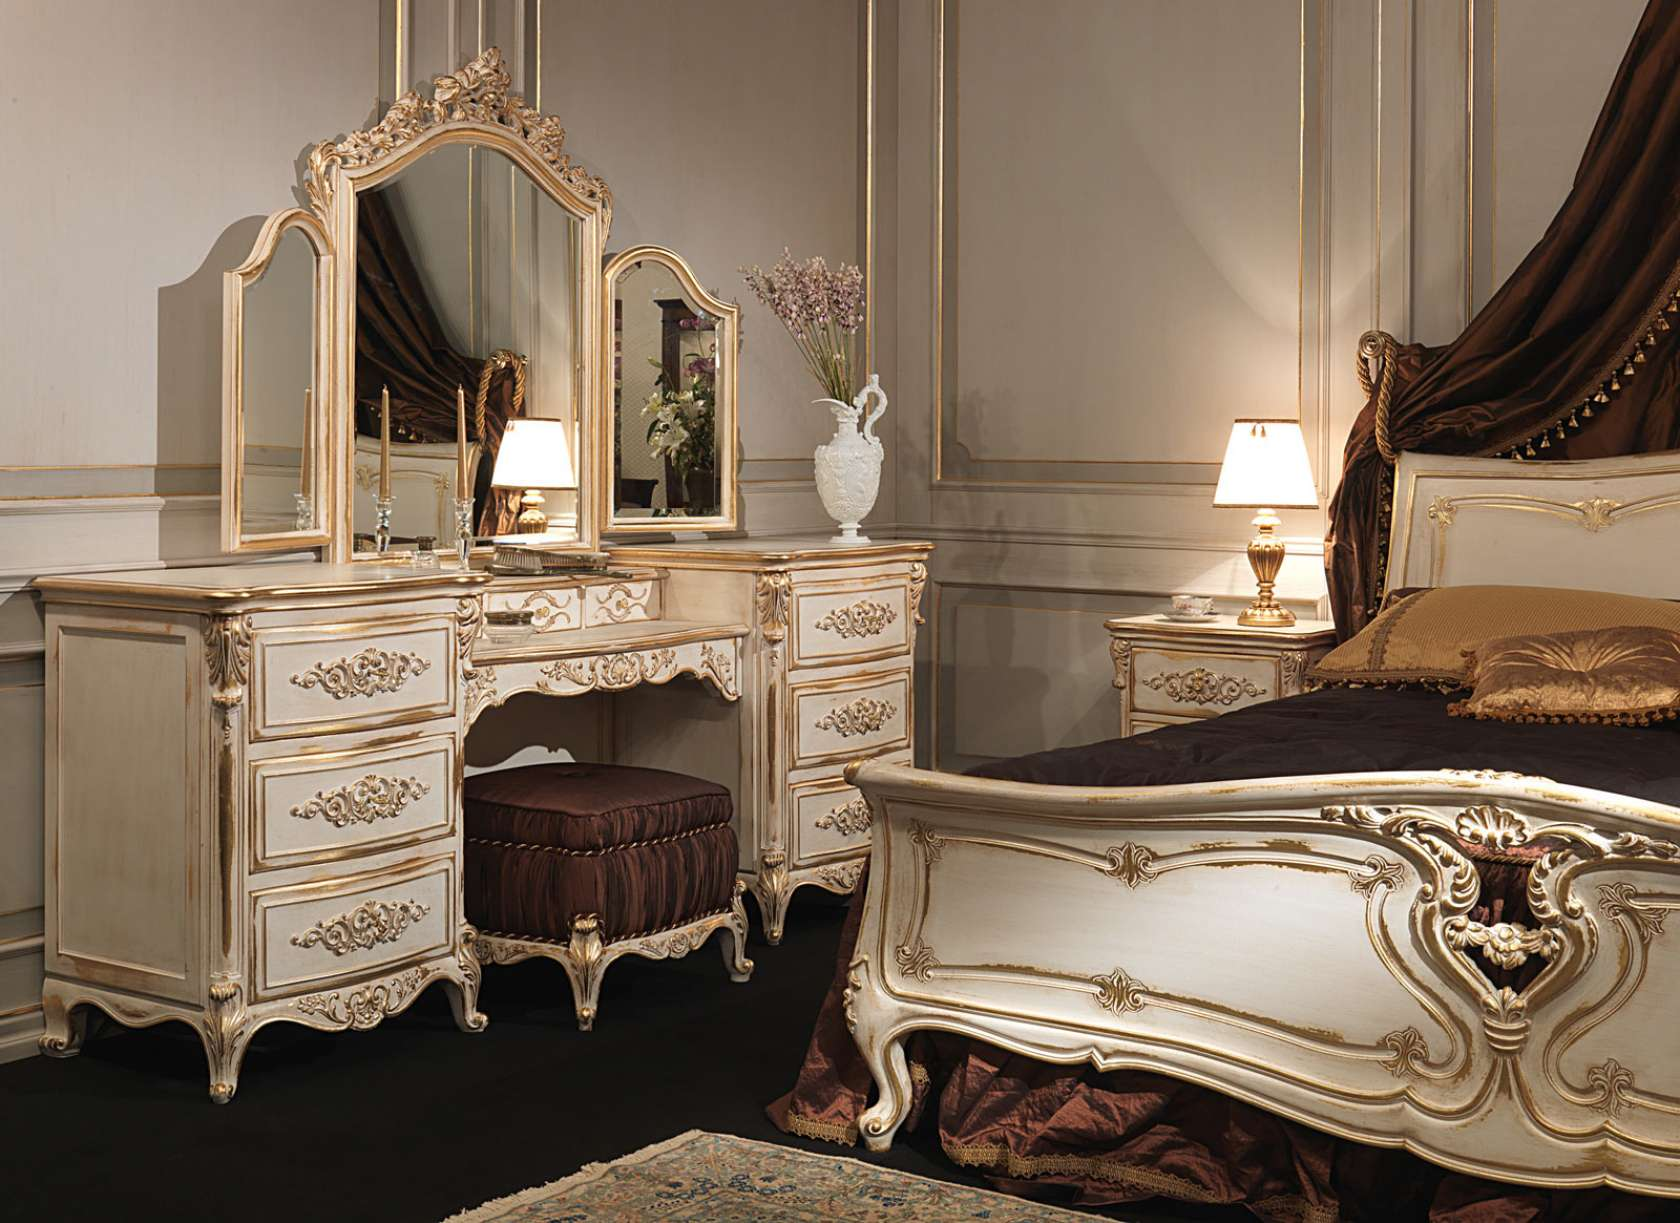 Louis Bedroom Furniture Antique Louis Xvi Bedroom Furniture Best Bedroom Ideas 2017